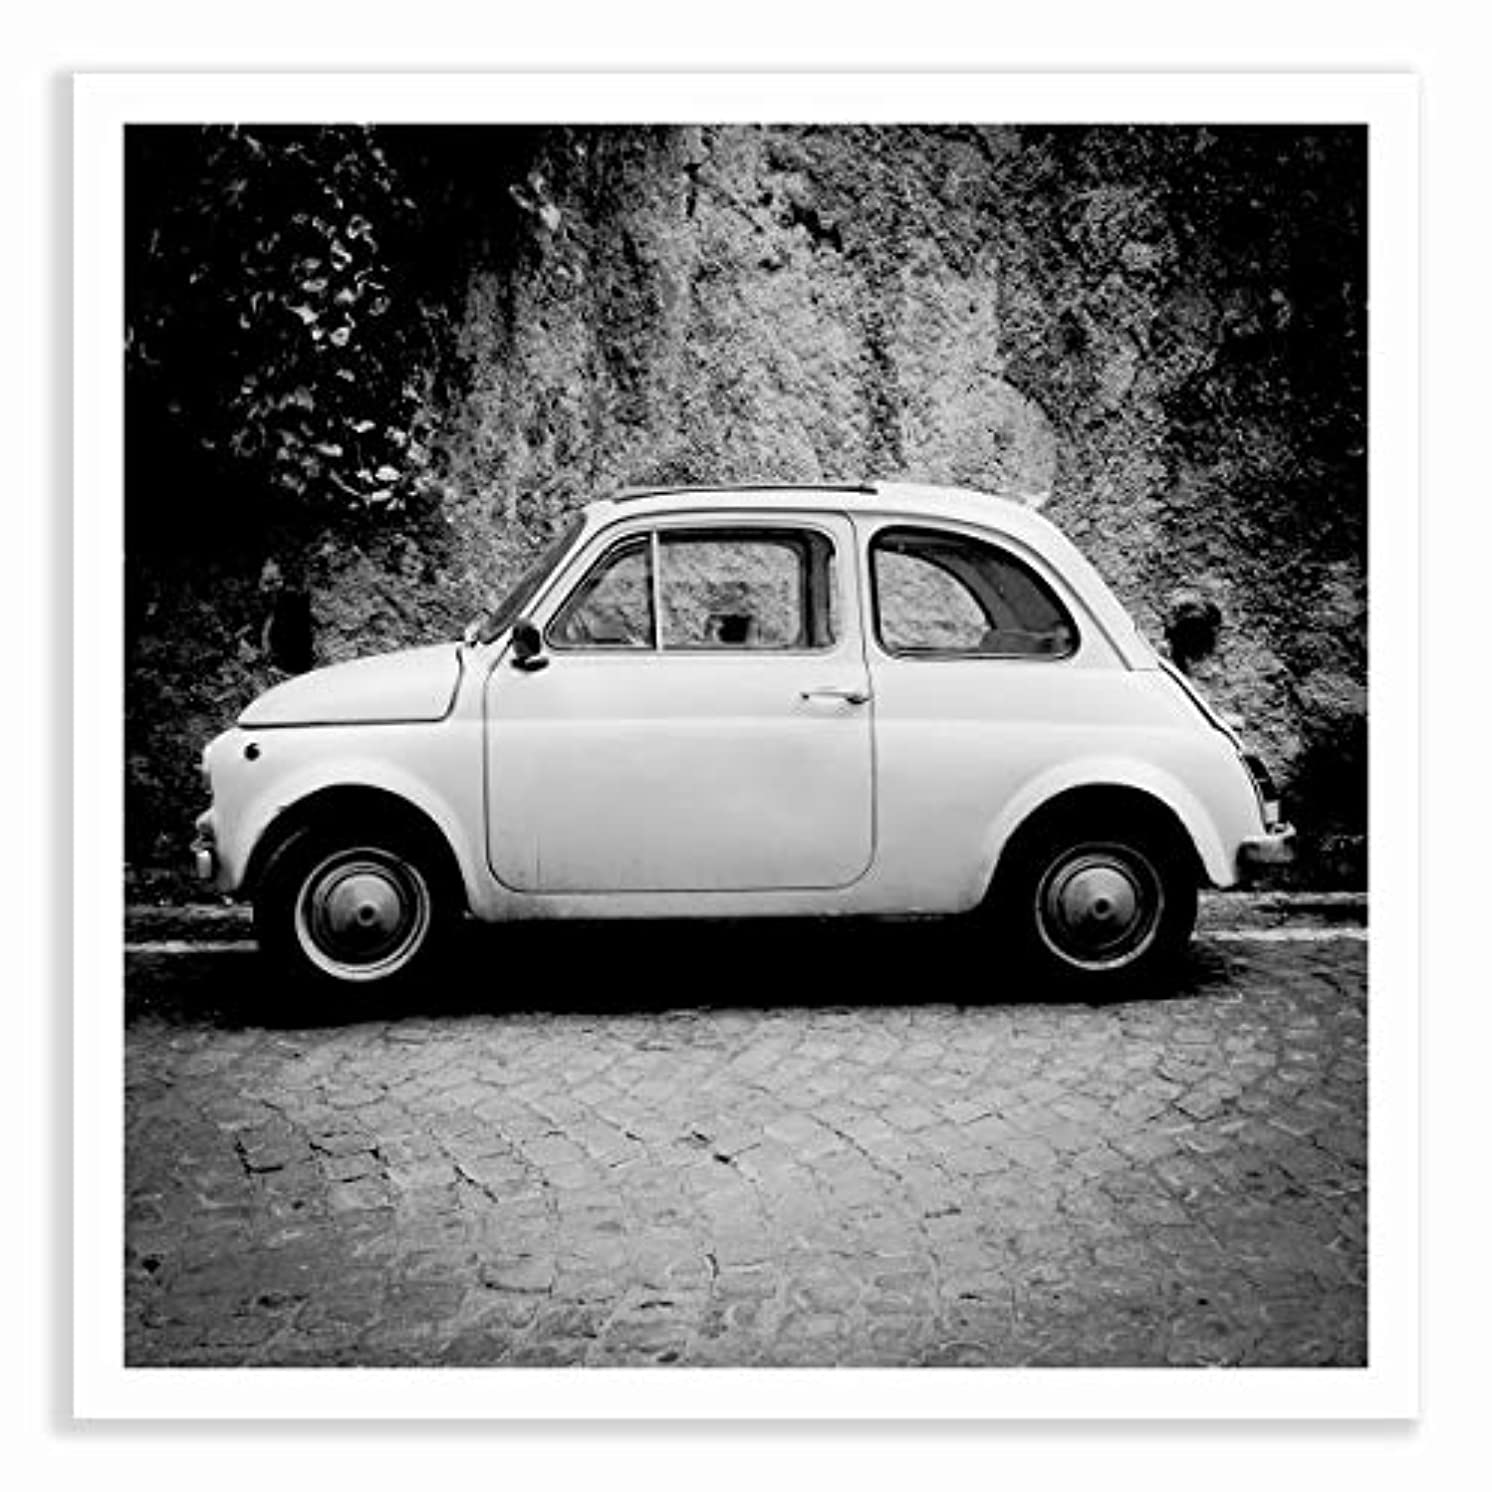 Fiat 500 Black and White Satin Black Aluminium Frame with Mount, Multicolored, 40x40